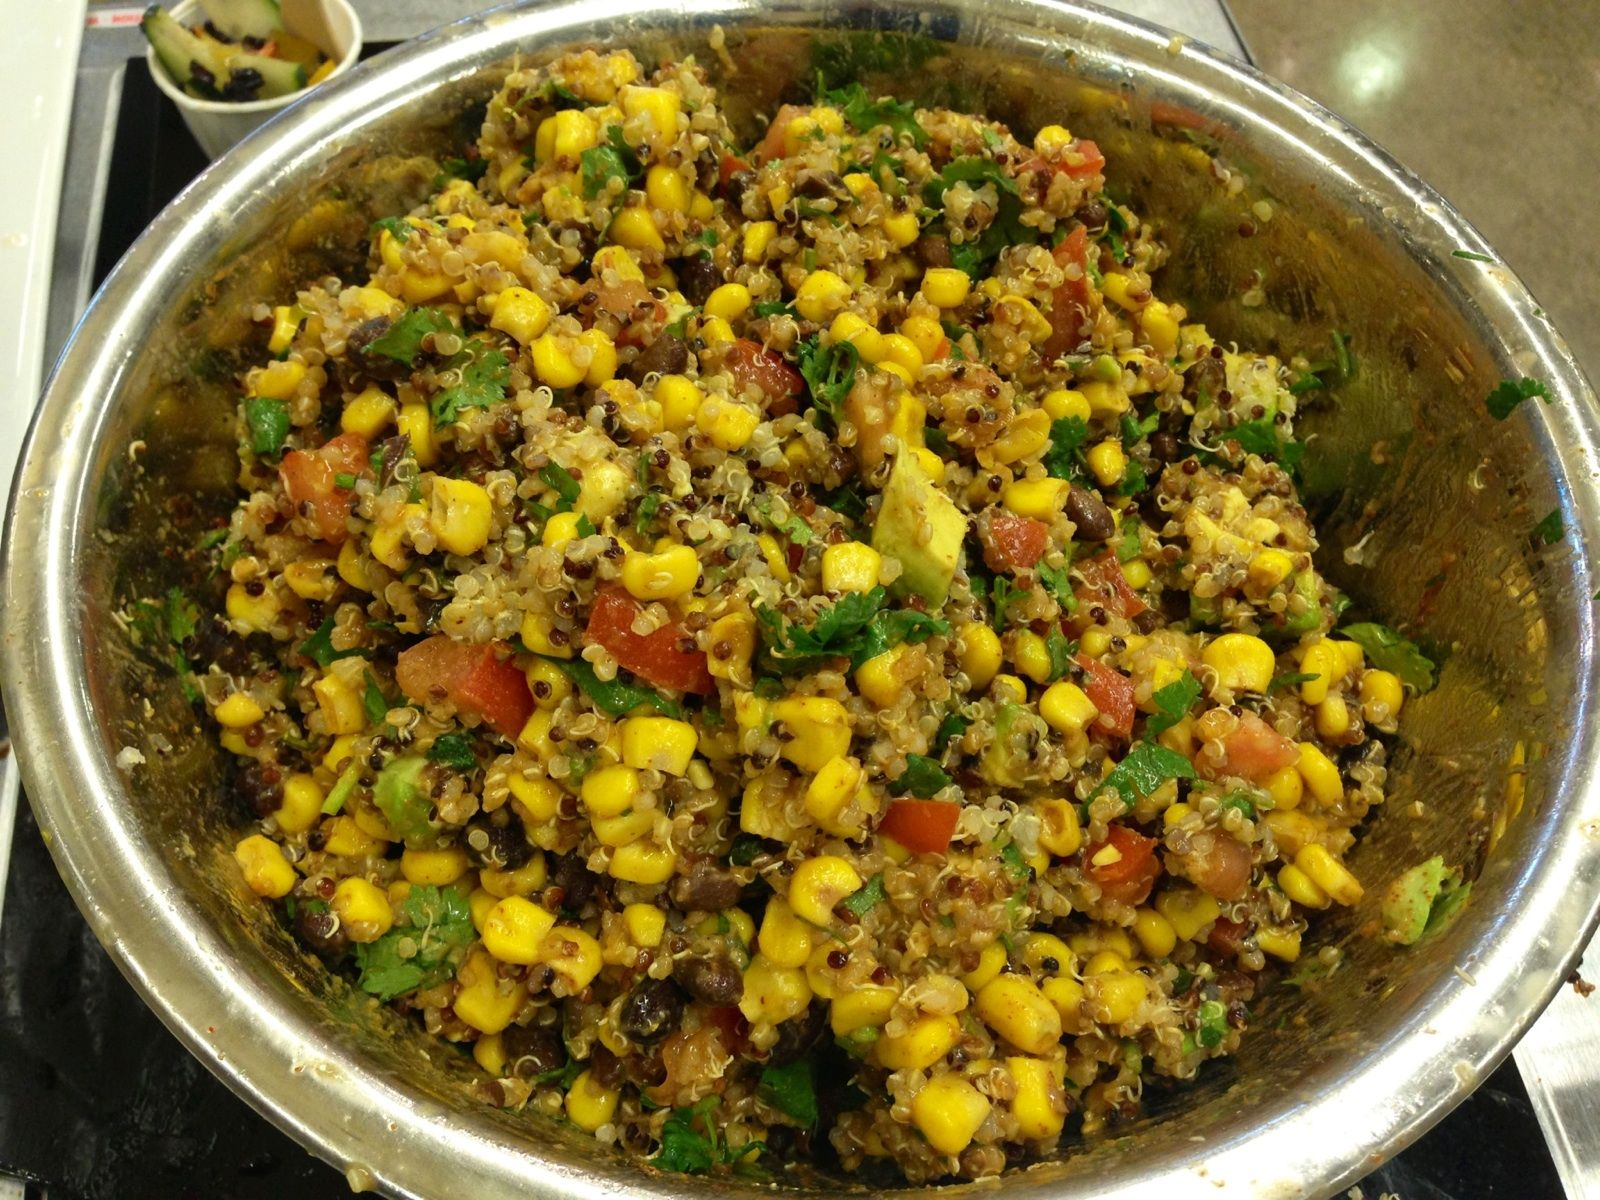 Tex mex quinoa salad recipes whole foods market cooking tex mex quinoa salad recipes whole foods market cooking fairfield forumfinder